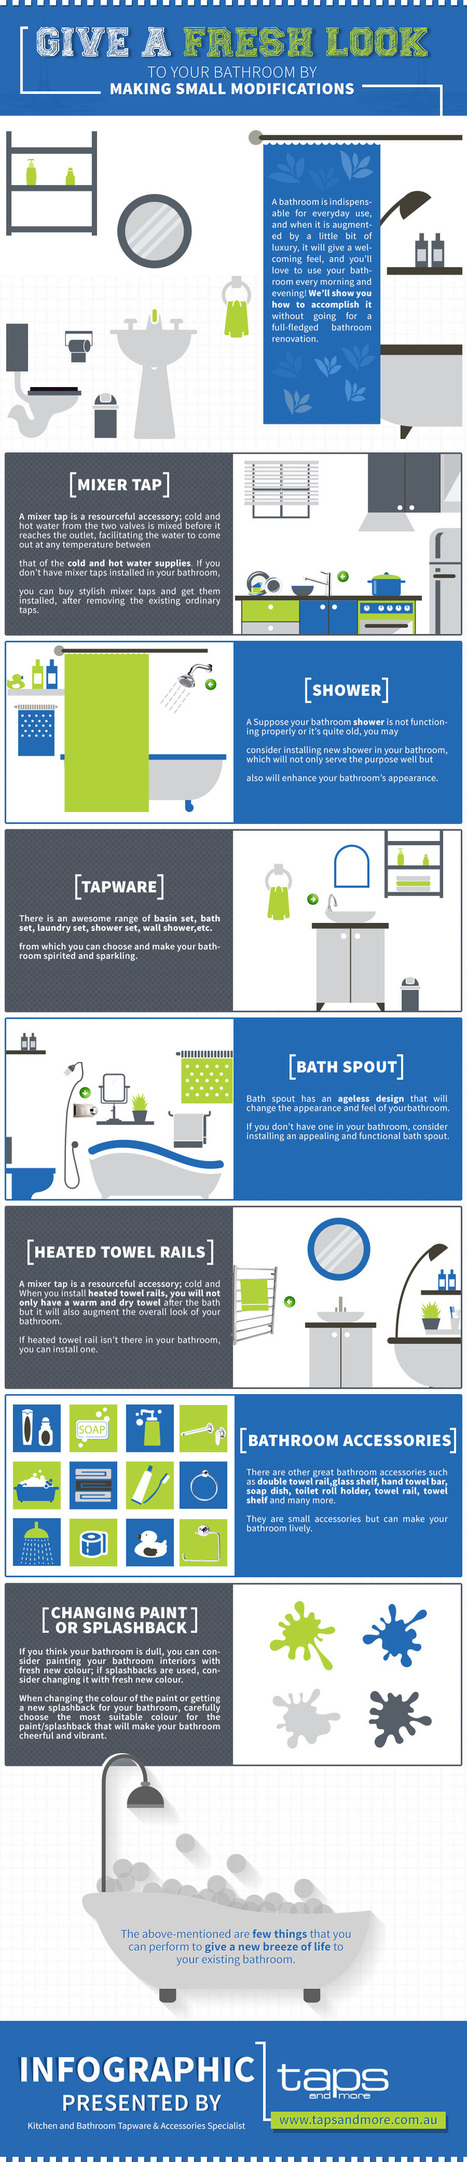 Infographic: Give A New Look To Your Bathroom By Making Small Modifications   Bathroom Accessories   Scoop.it